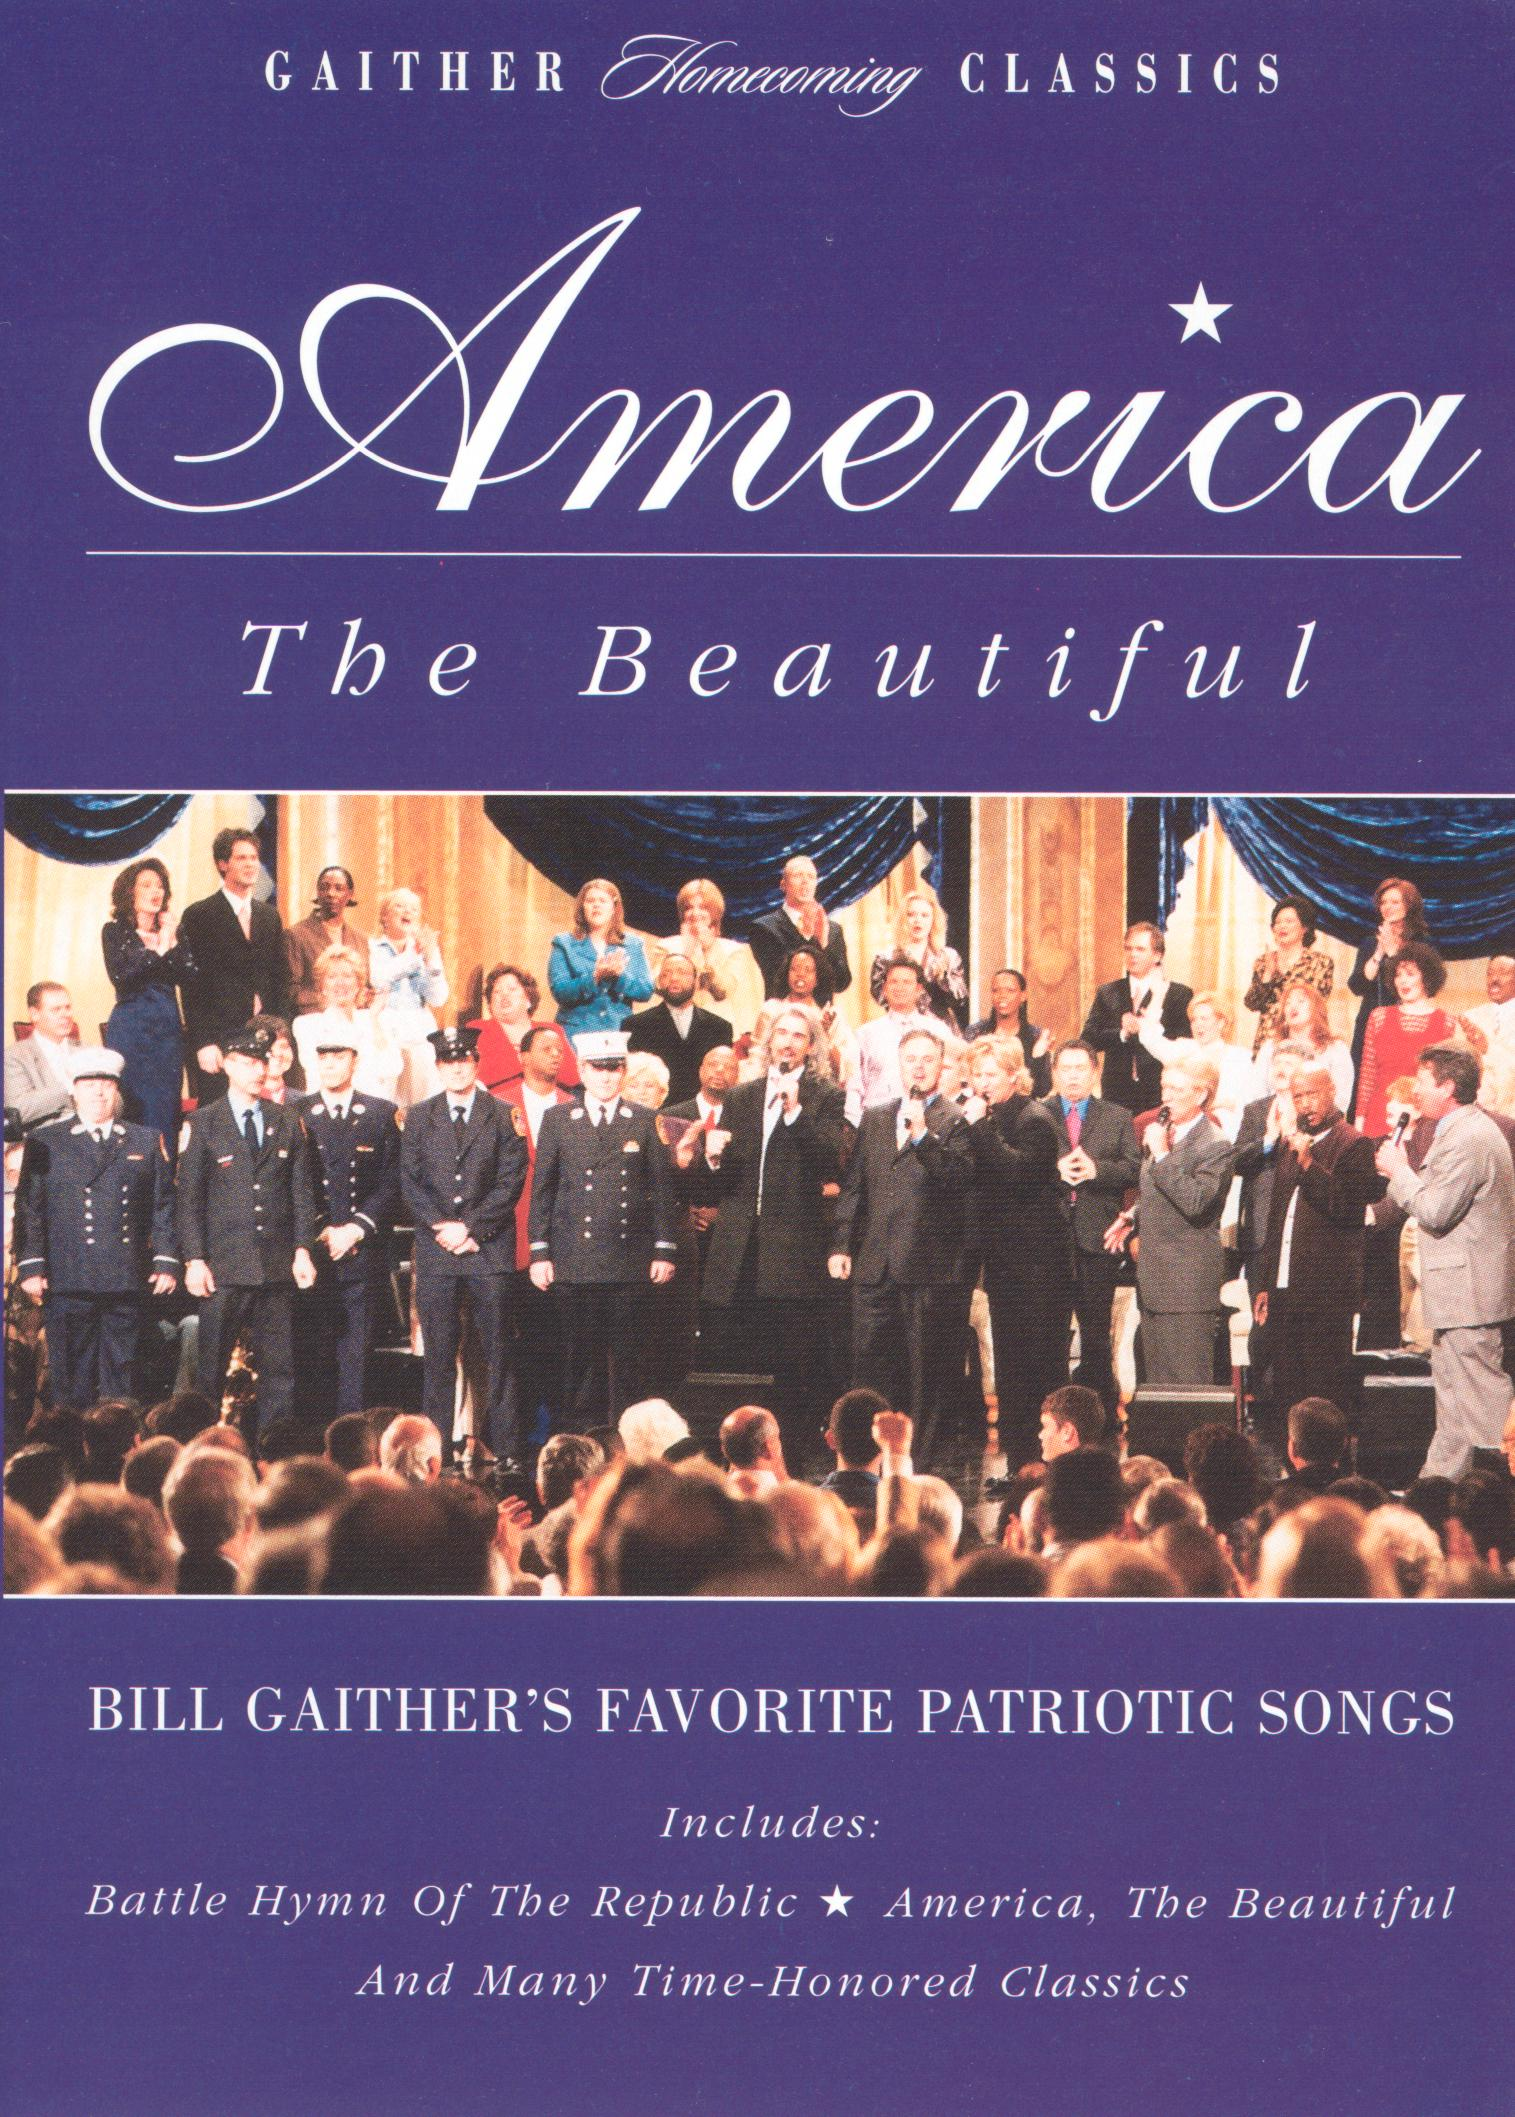 Gaither Homecoming Classics: America the Beautiful - Bill Gaither's Favorite Patriotic Songs